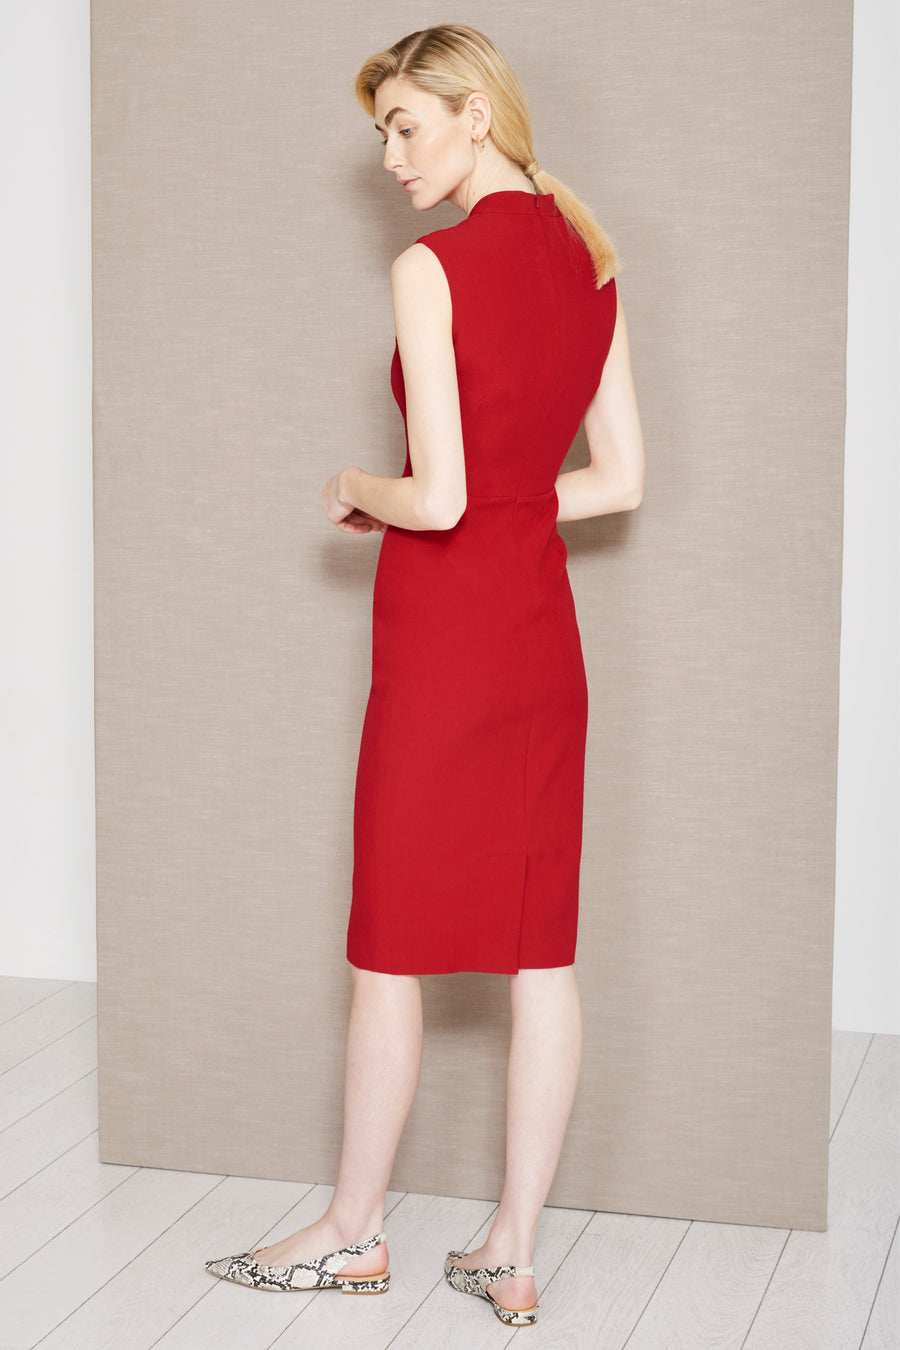 Allington Lipstick Red Dress